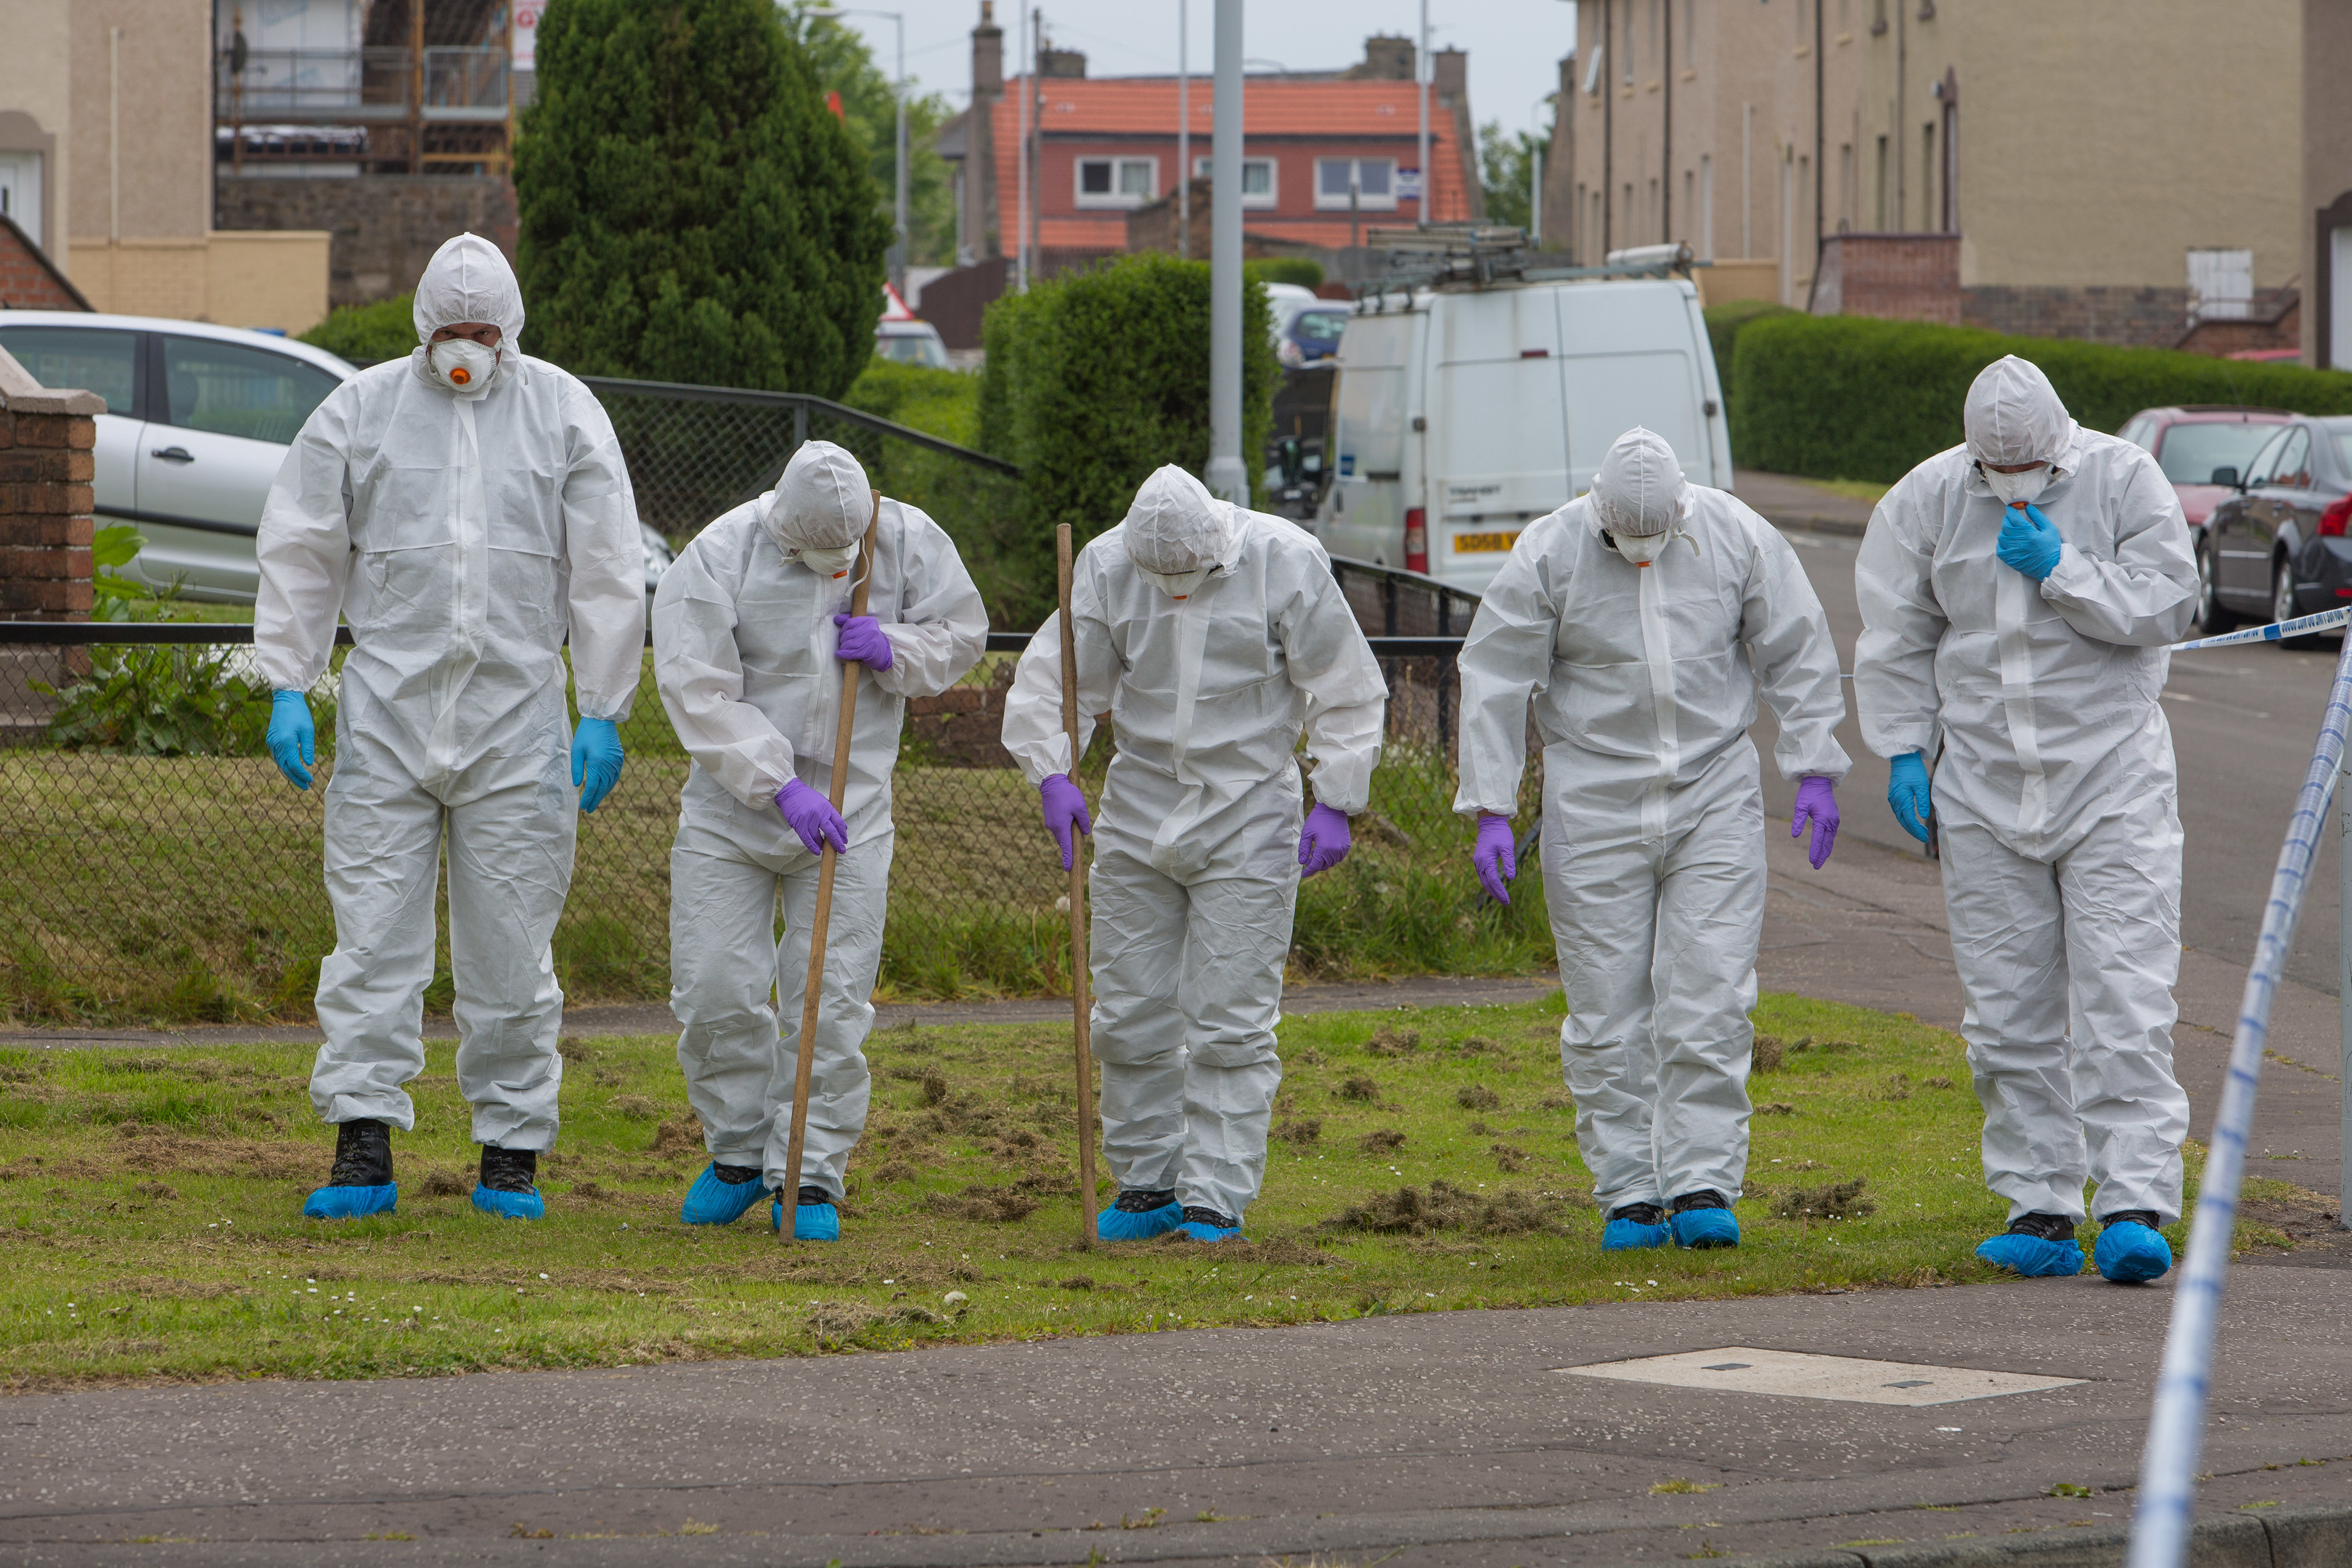 Officers conduct a forensic search of the scene.